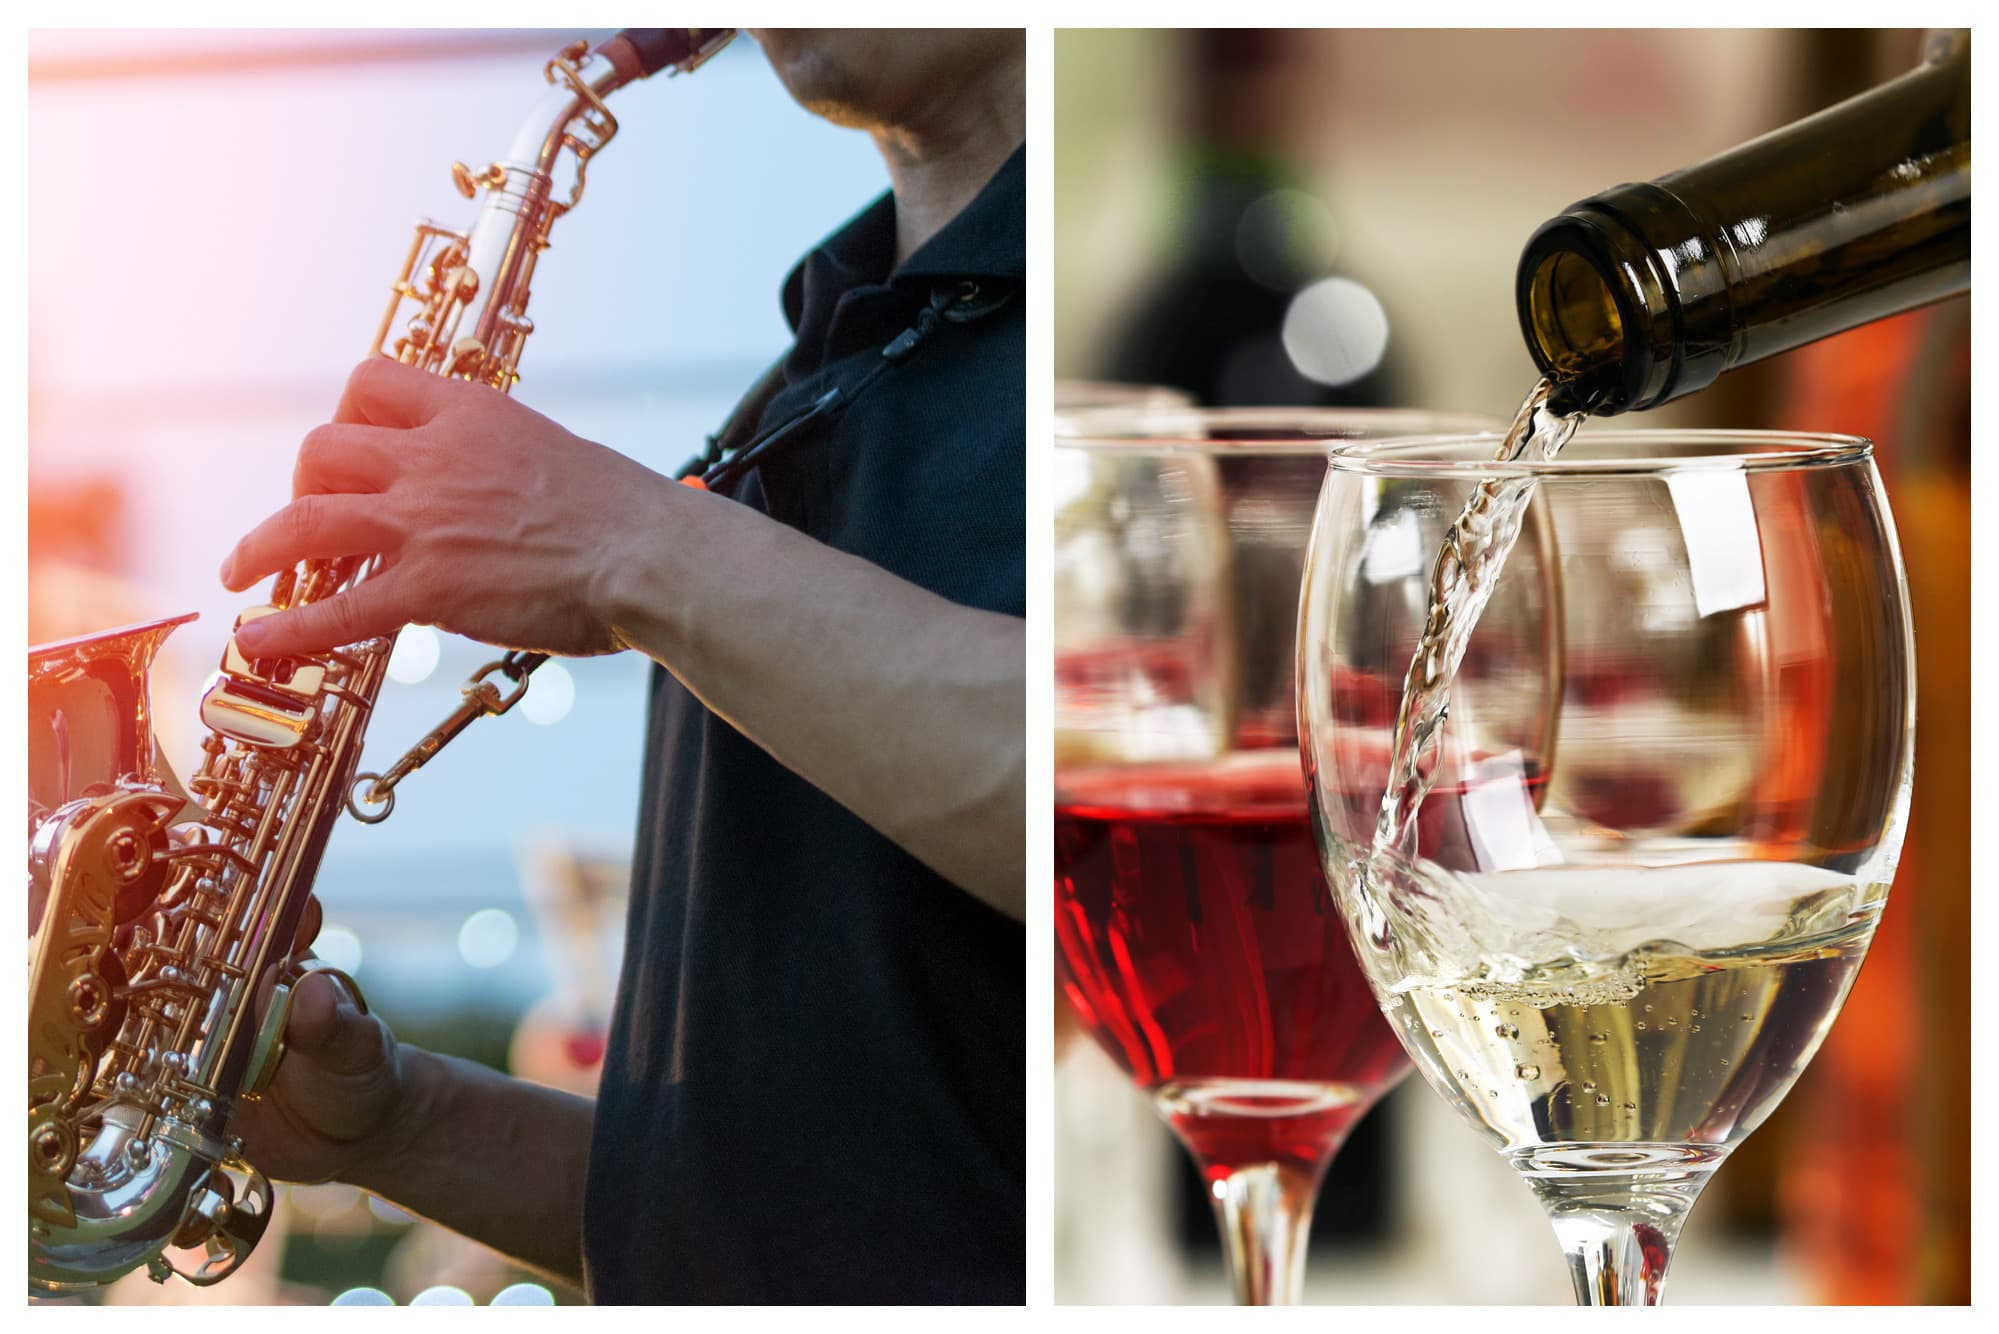 Jazz festival and pouring wine